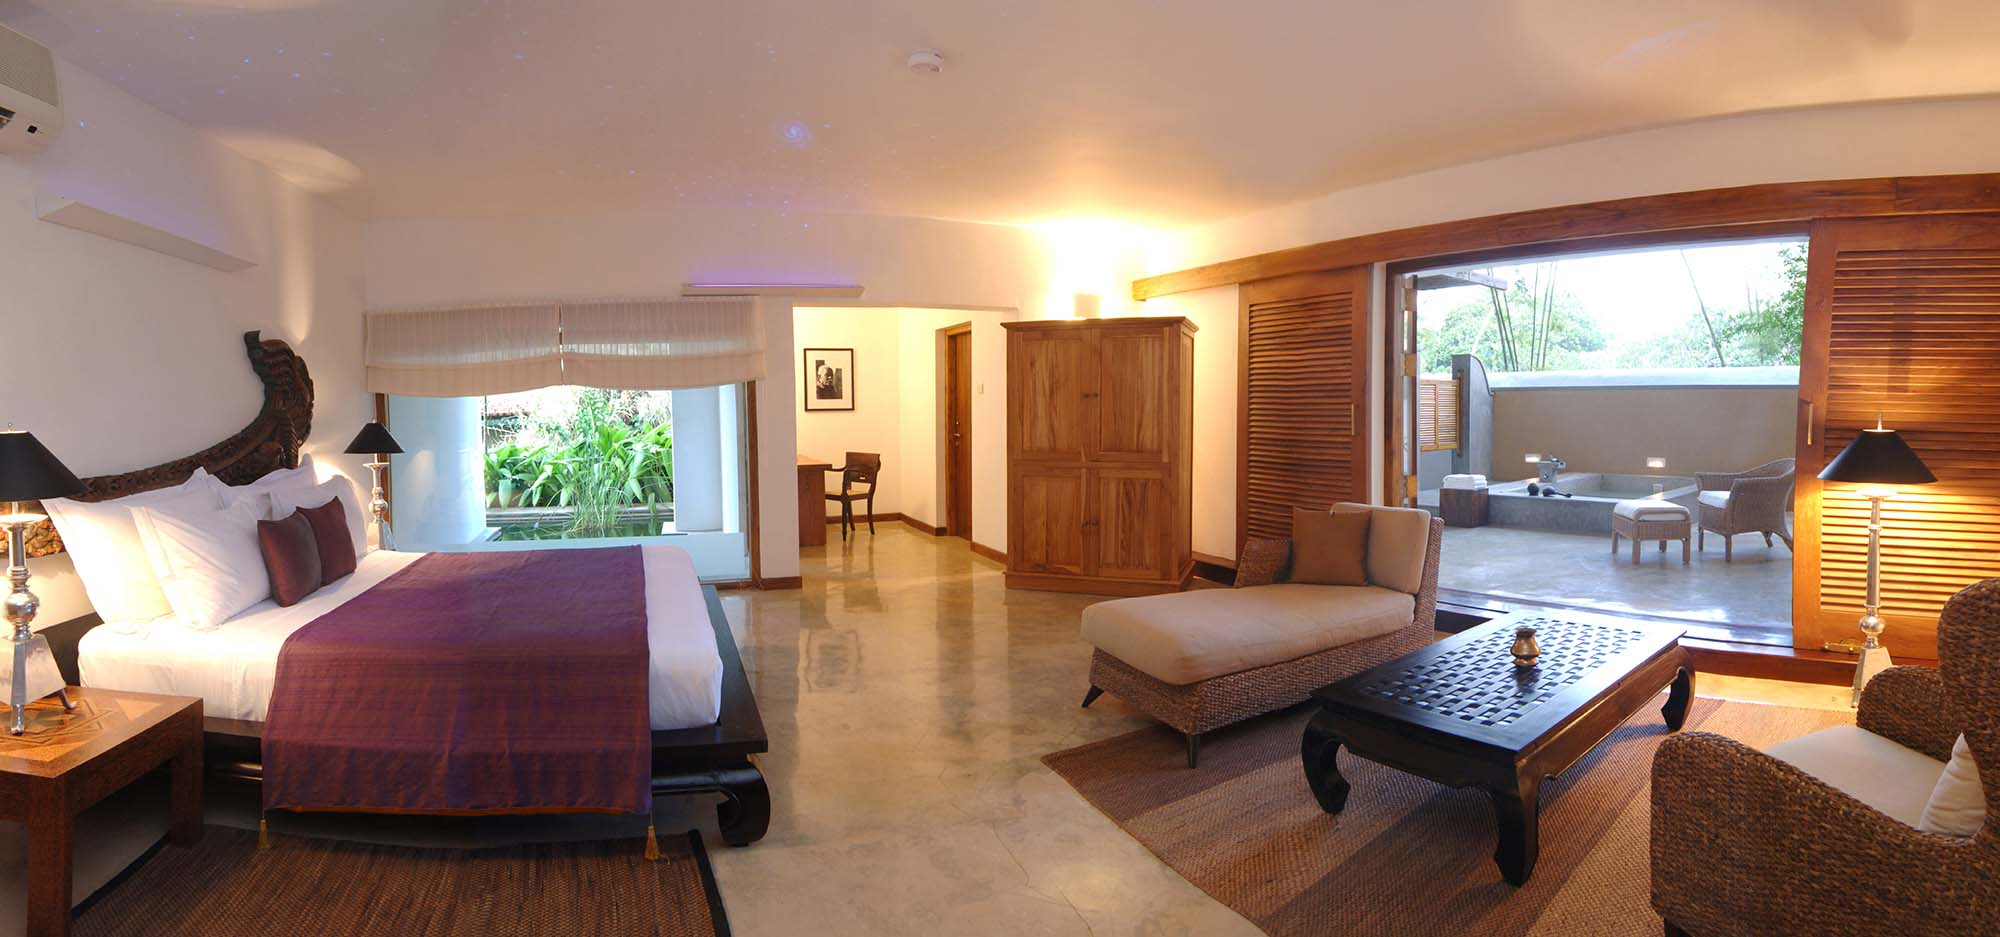 Aditya_Shanthi_Suite_-_Bedroom.jpg